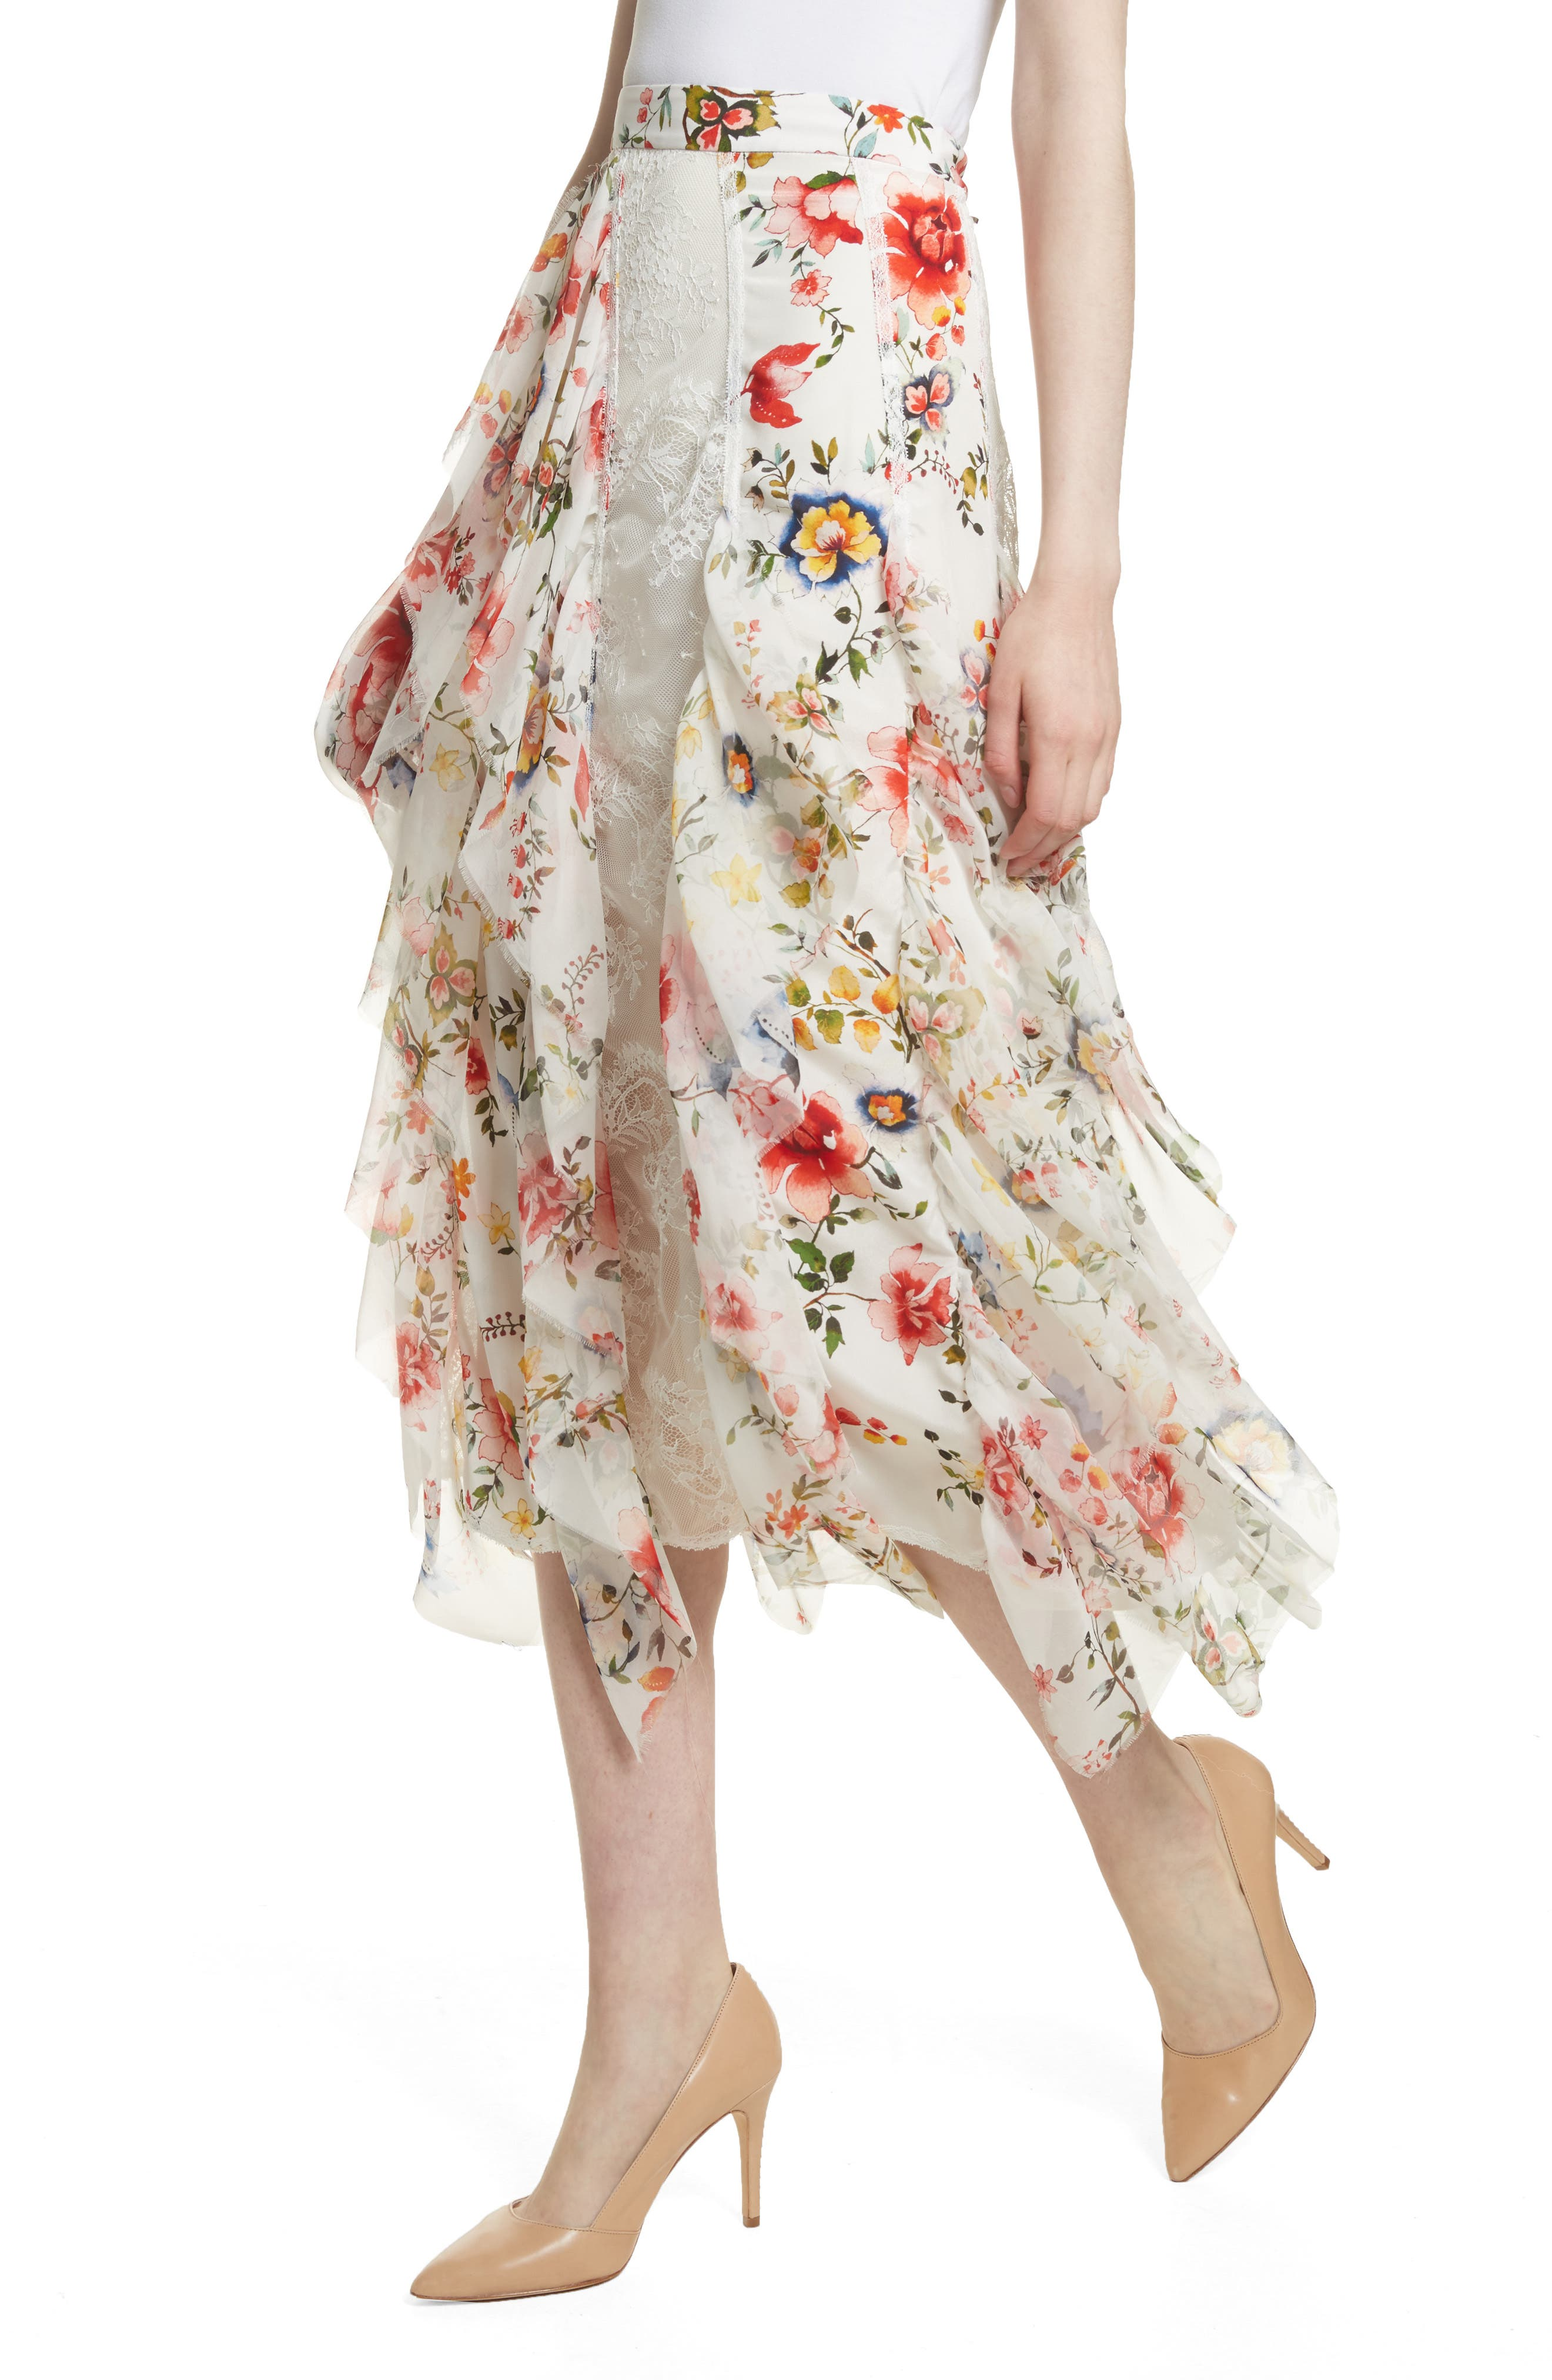 Yula Floral Silk & Lace Midi Skirt,                             Alternate thumbnail 4, color,                             Floral Soiree-Soft White